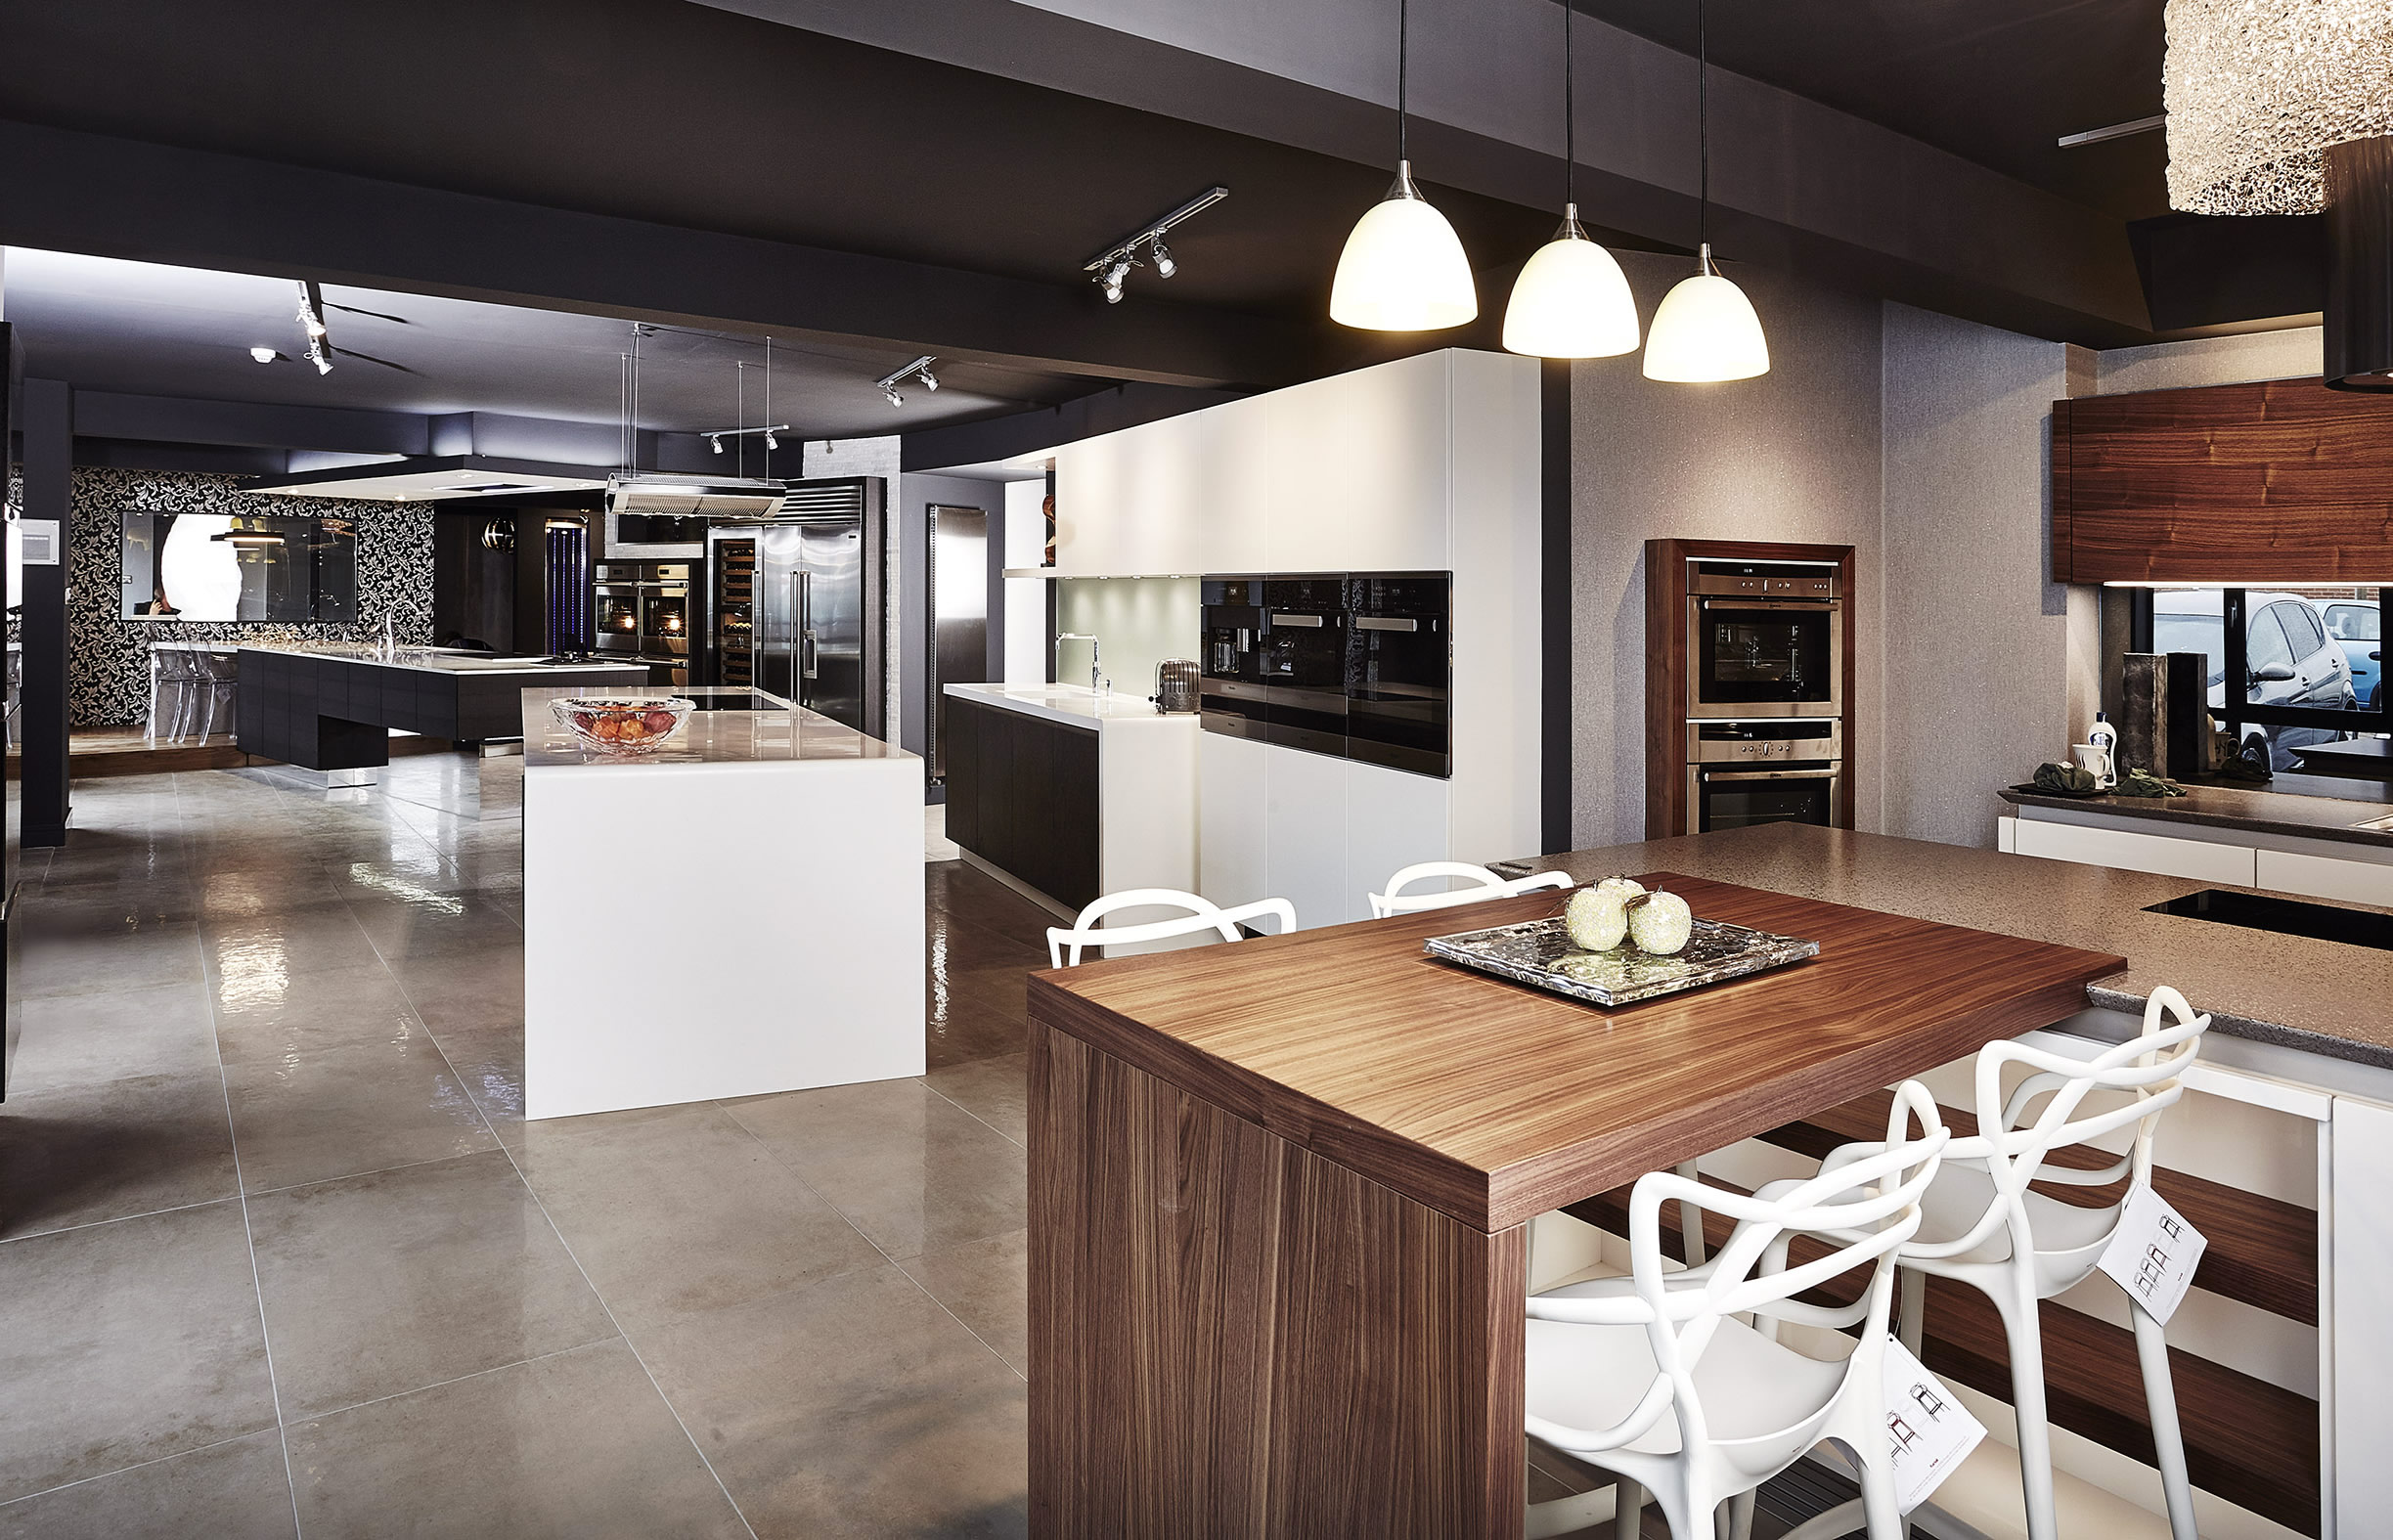 Kitchen showroom design ideas with images for Kitchen ideas on a budget uk